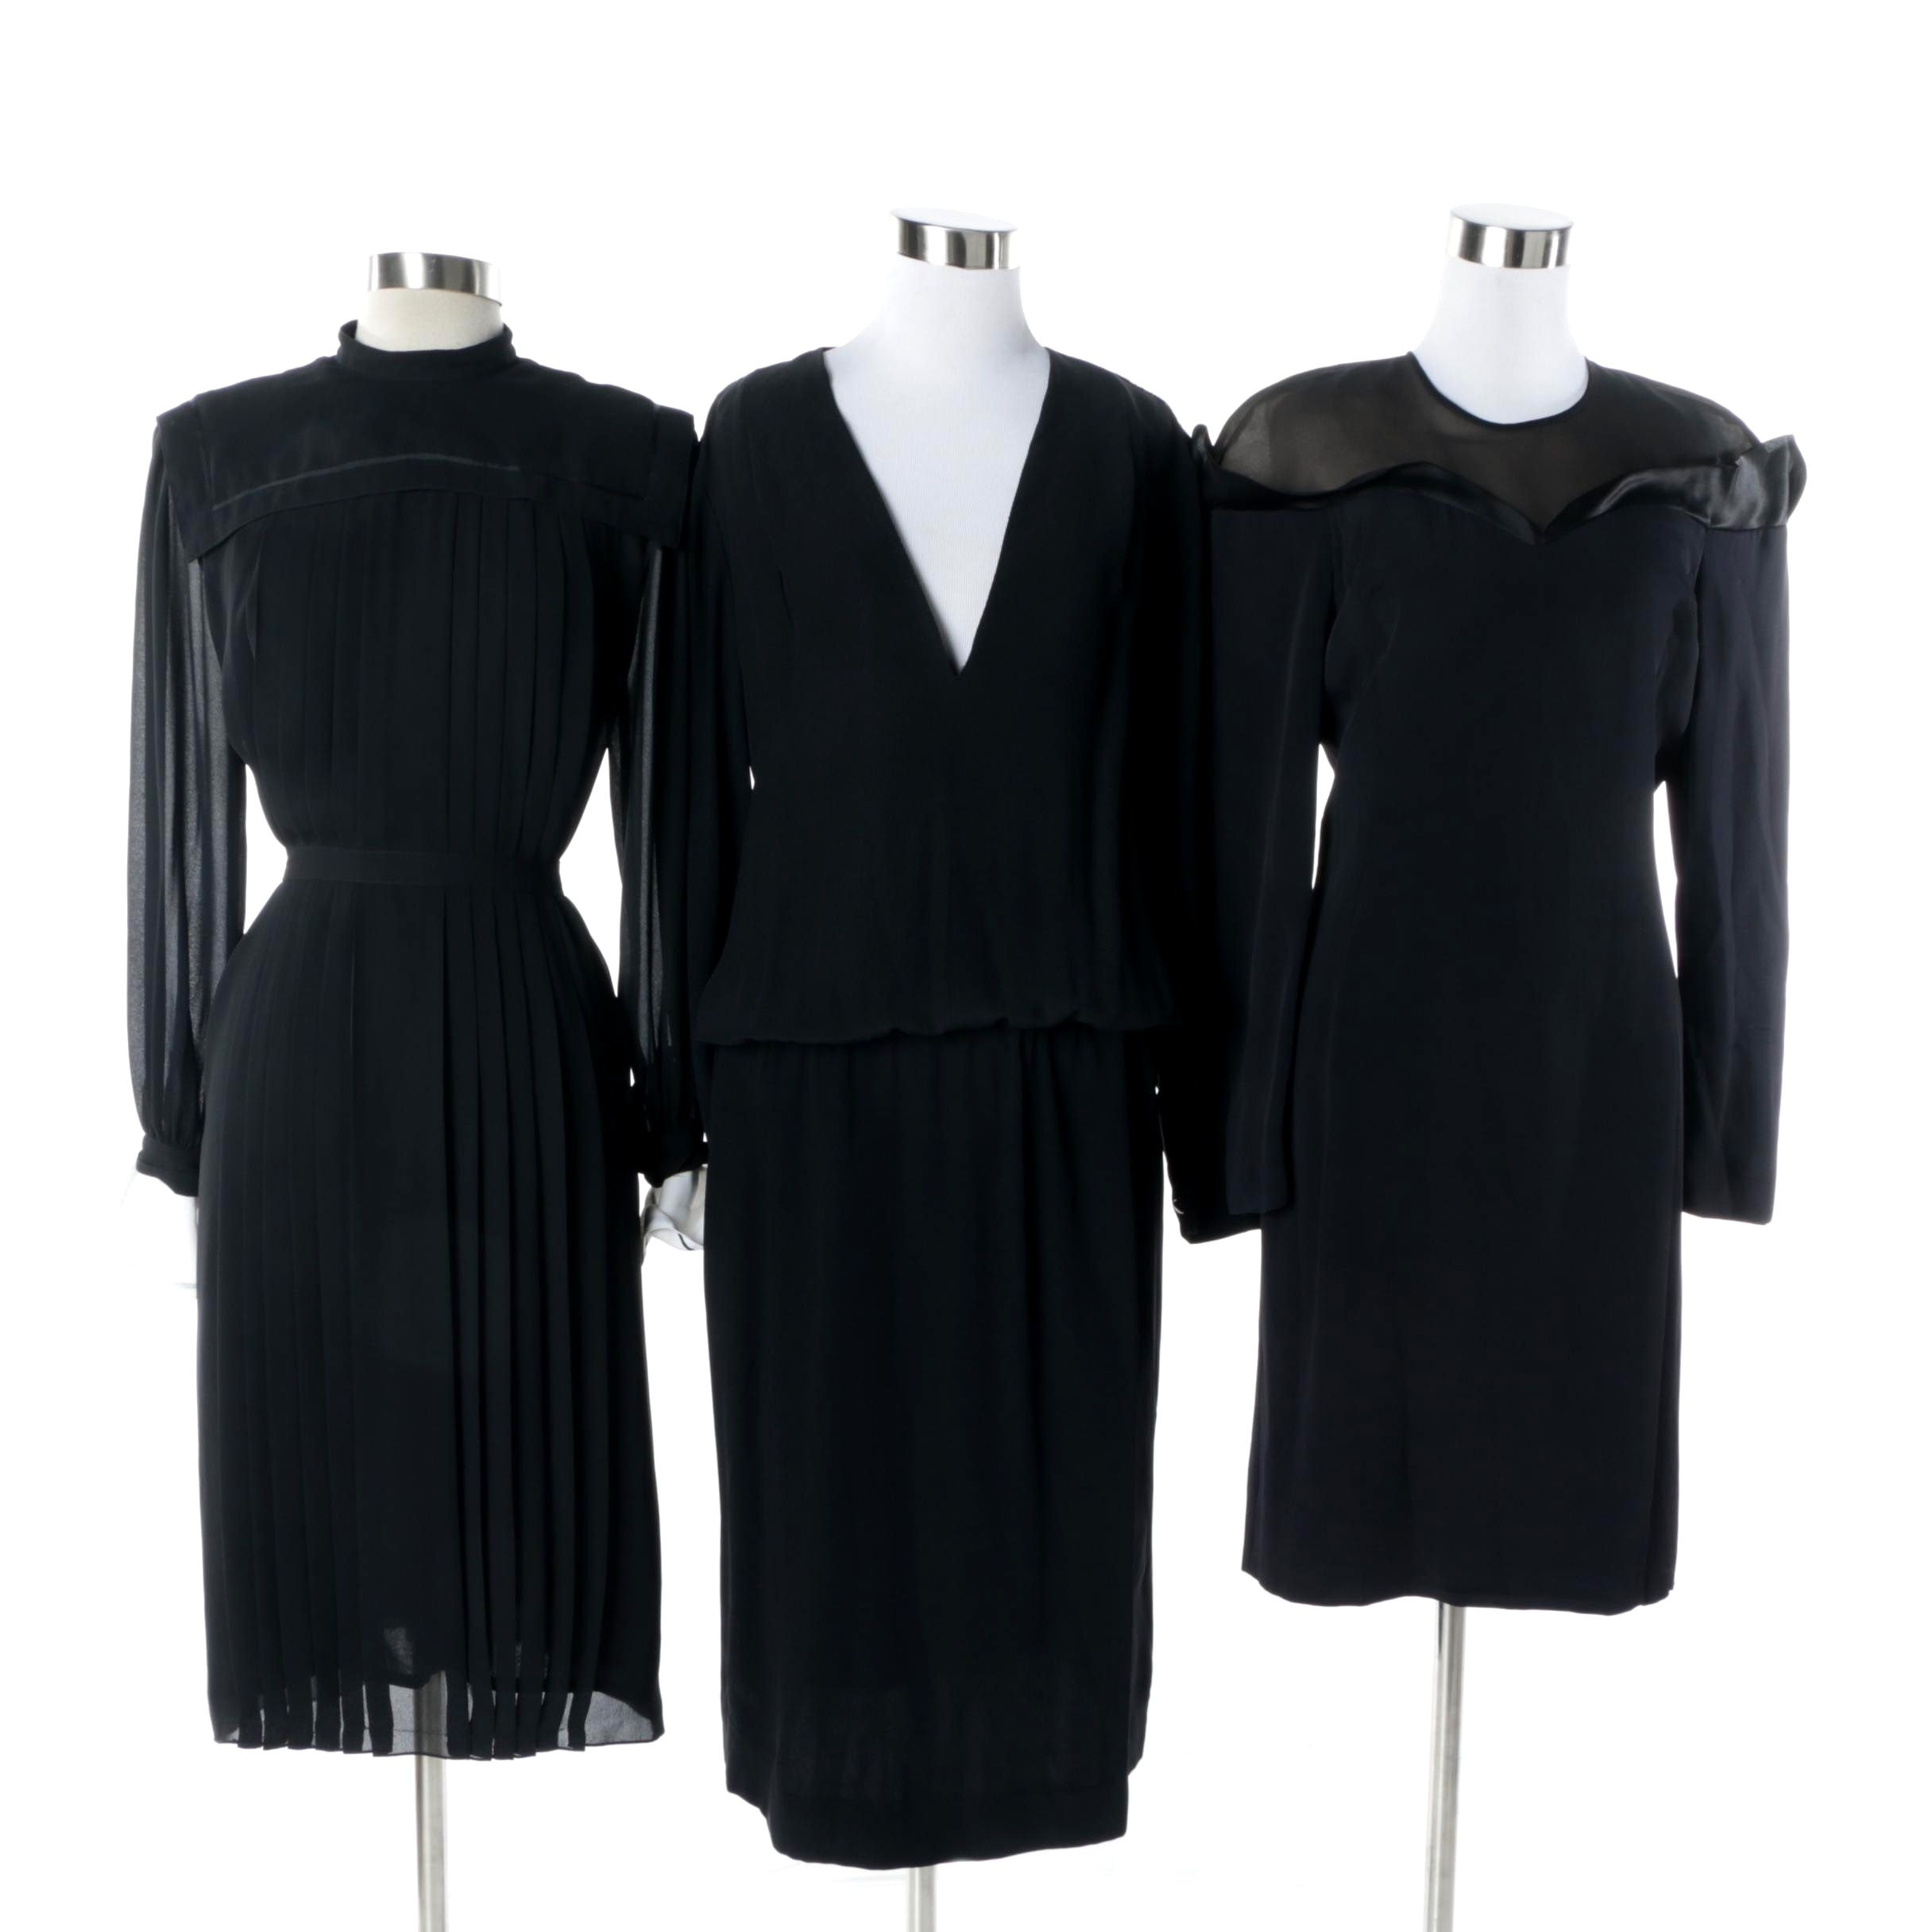 1980s Black Party Dresses Including Pierre Cardin and CH by Carolina Herrera